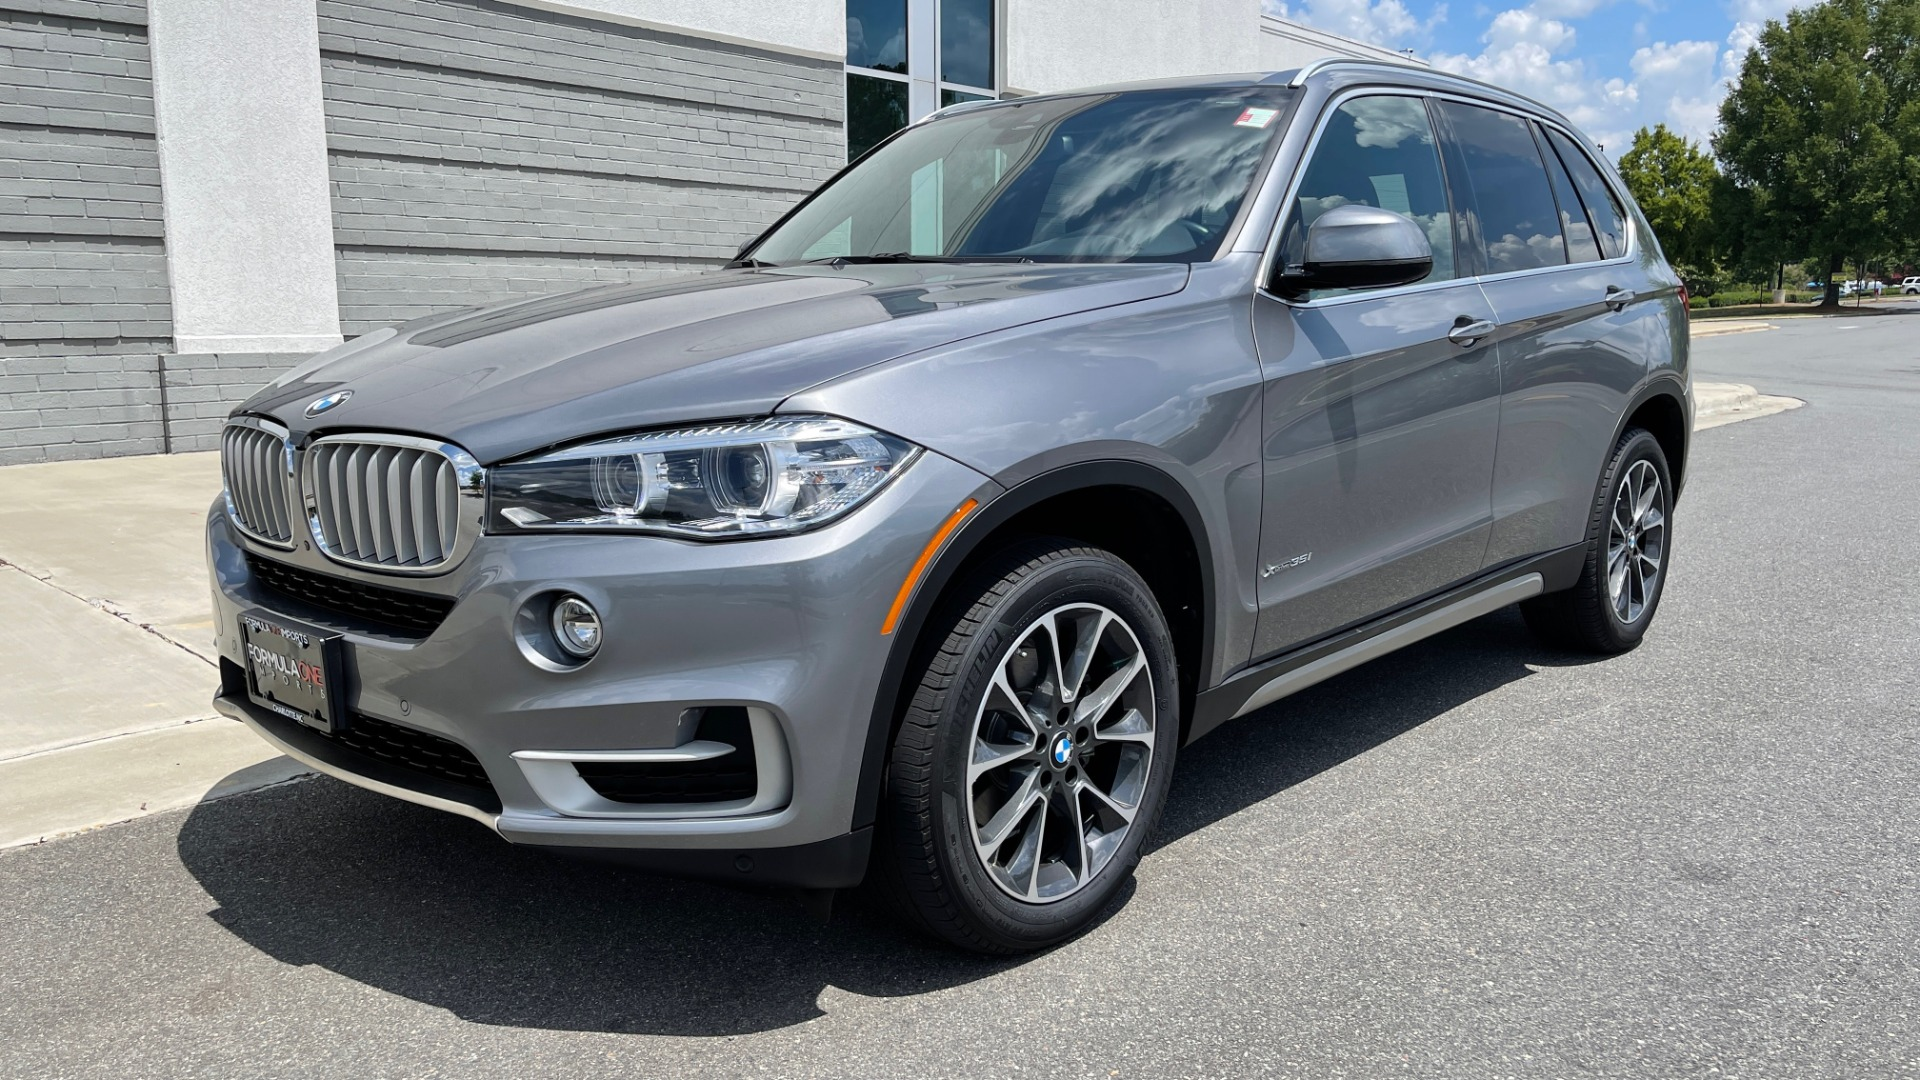 Used 2018 BMW X5 XDRIVE35I PREMIUM / DRVR ASST / WIRELESS CHARGING / CAMERAS for sale $46,995 at Formula Imports in Charlotte NC 28227 3